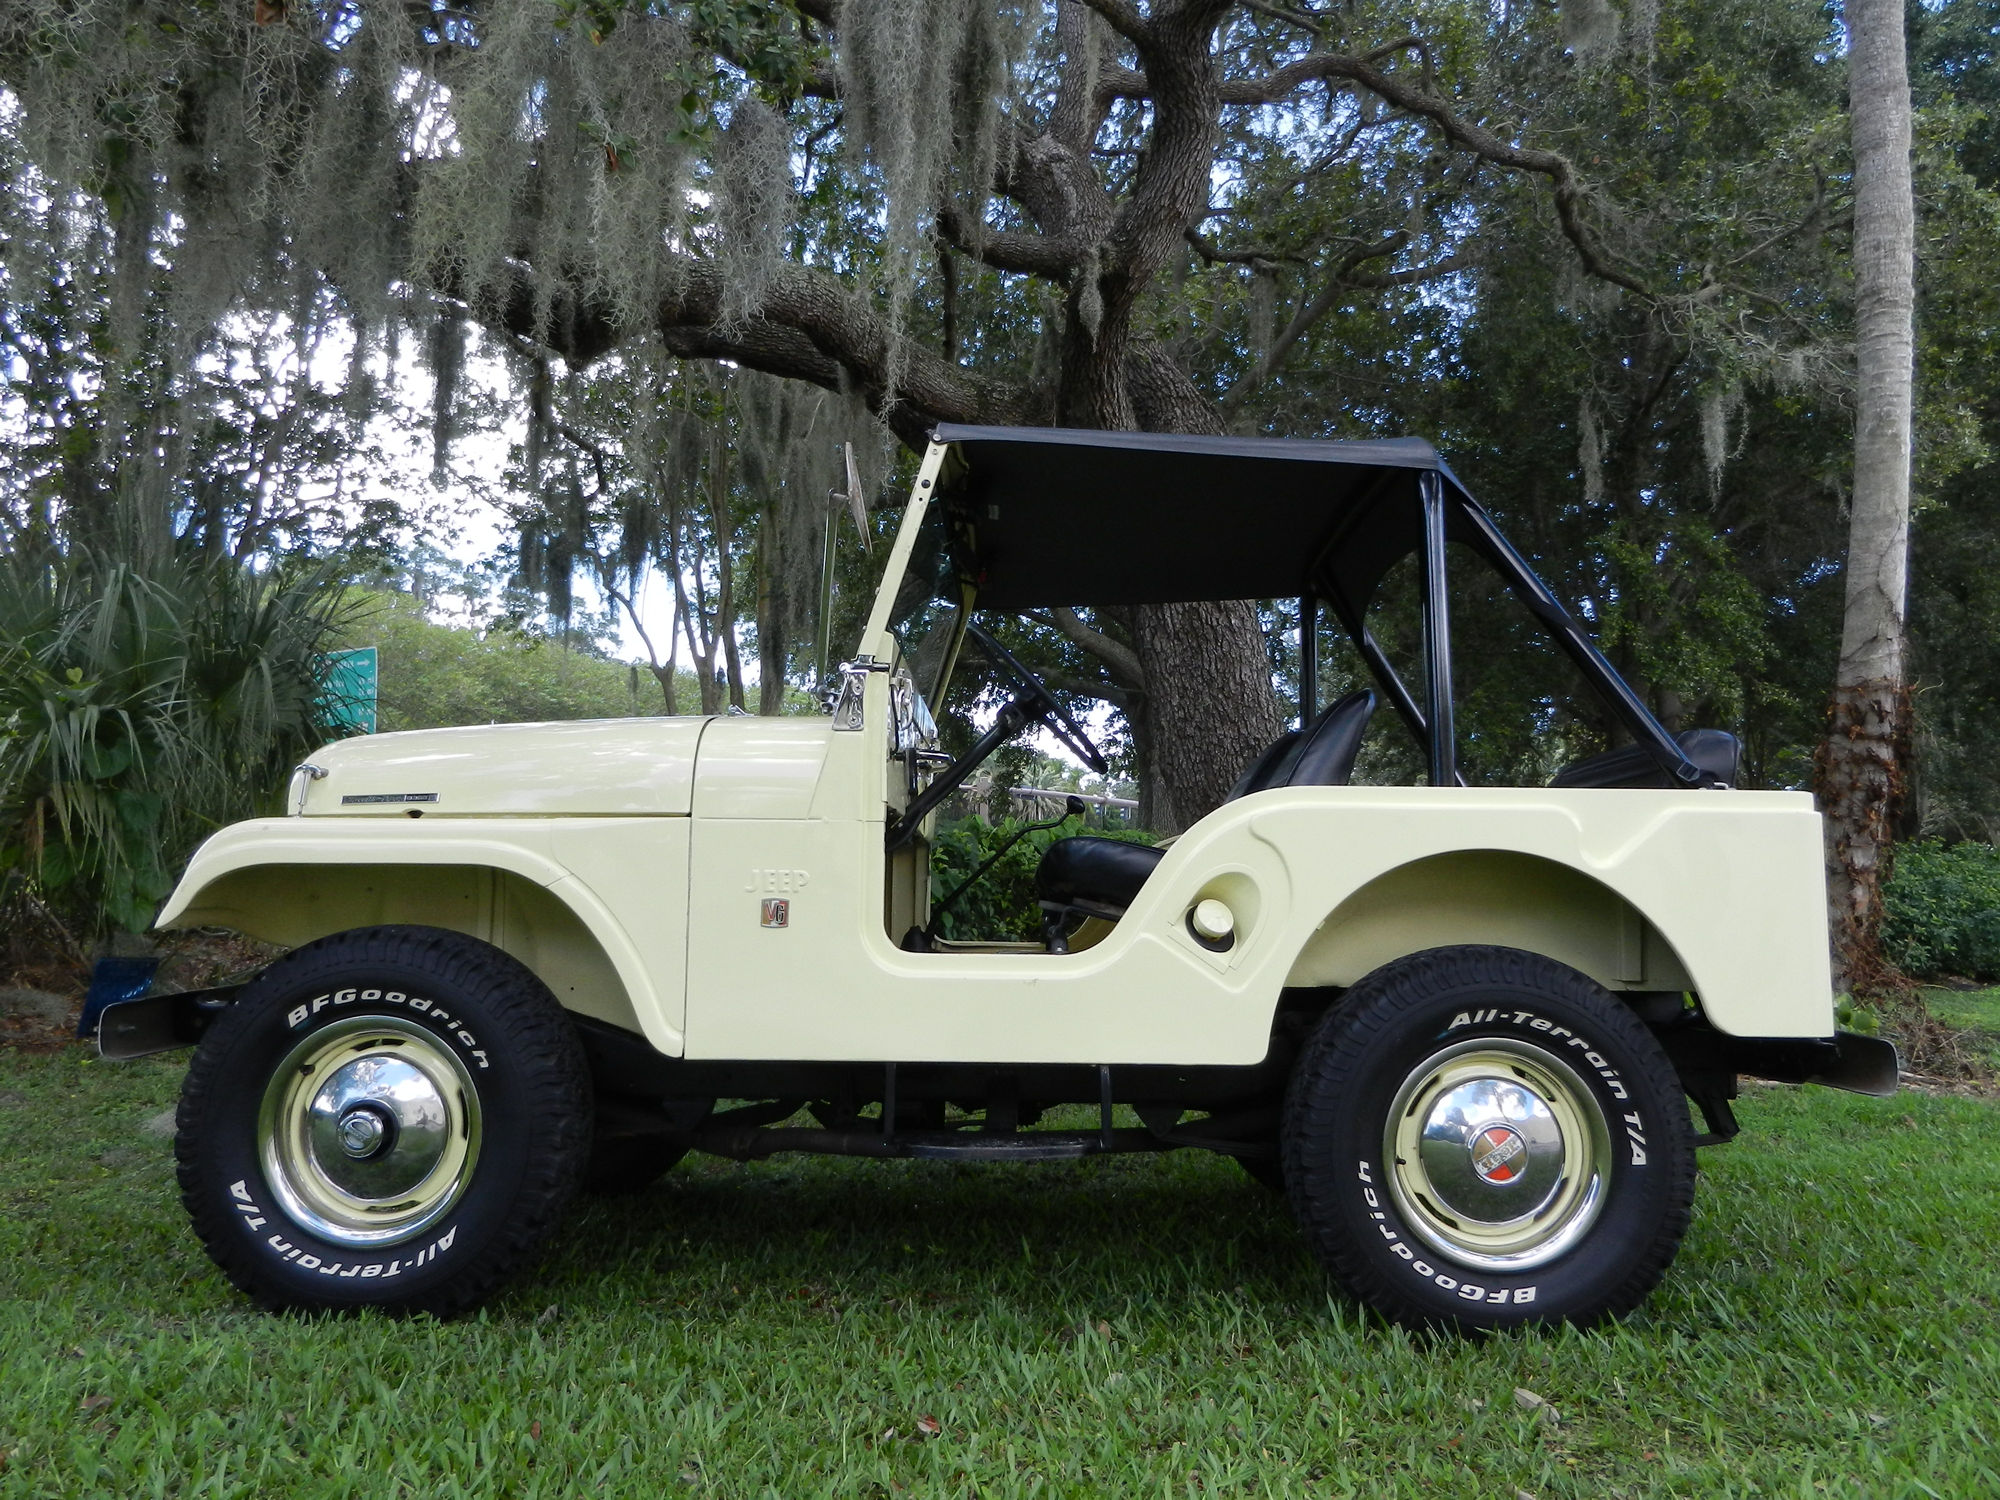 Jeep Cj7 For Sale Craigslist | New Car Release Date